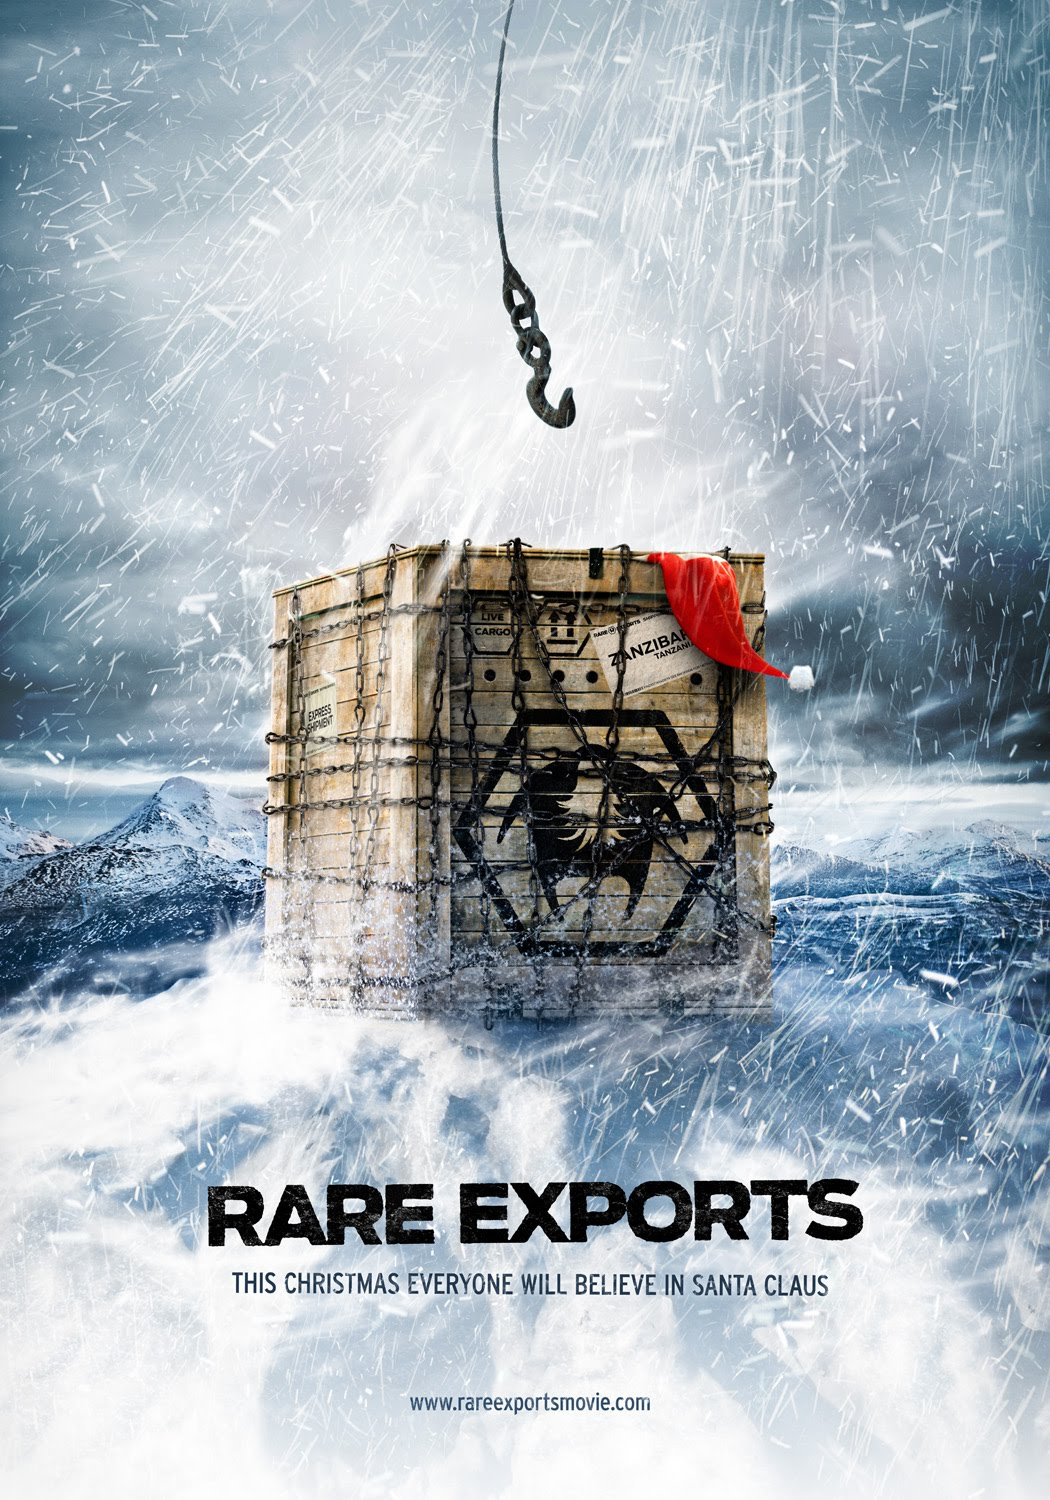 rare exports teaser poster en telefonos catalina mendoza arredondo christine mendoza accidently shows ...